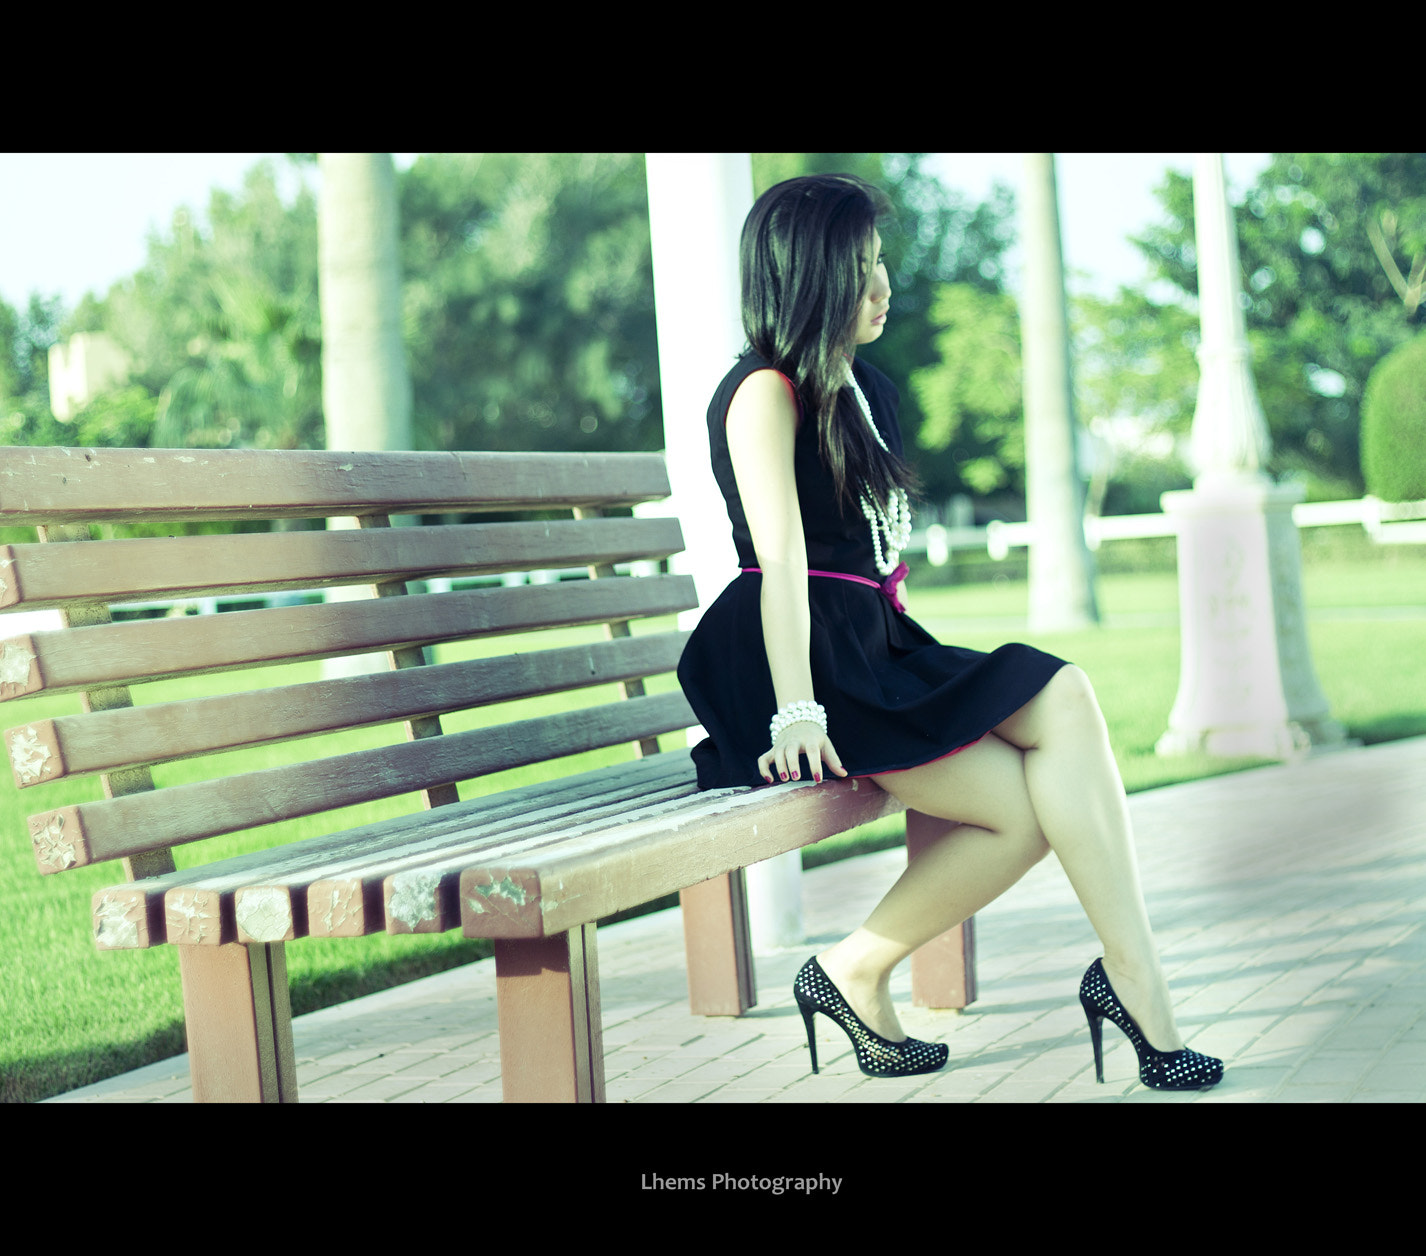 Photograph Bench Lady by Lhems Anso on 500px